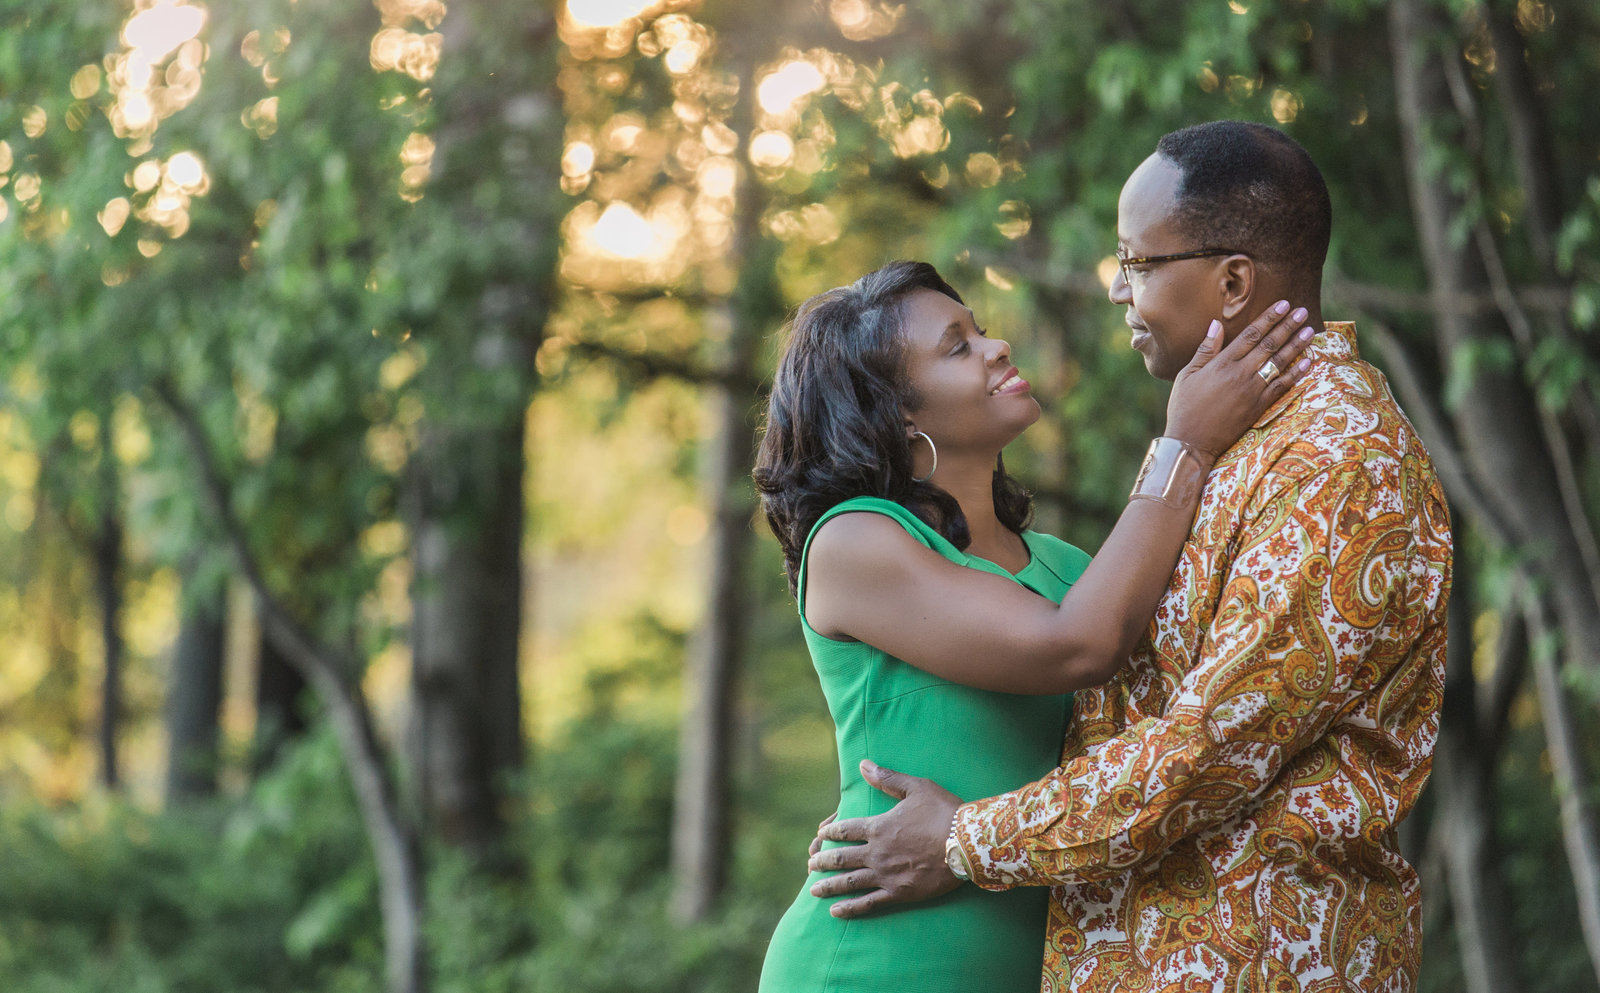 charlotte engagement photographer jamie lucido creates a beautiful engagement portrait in the woods at sunset